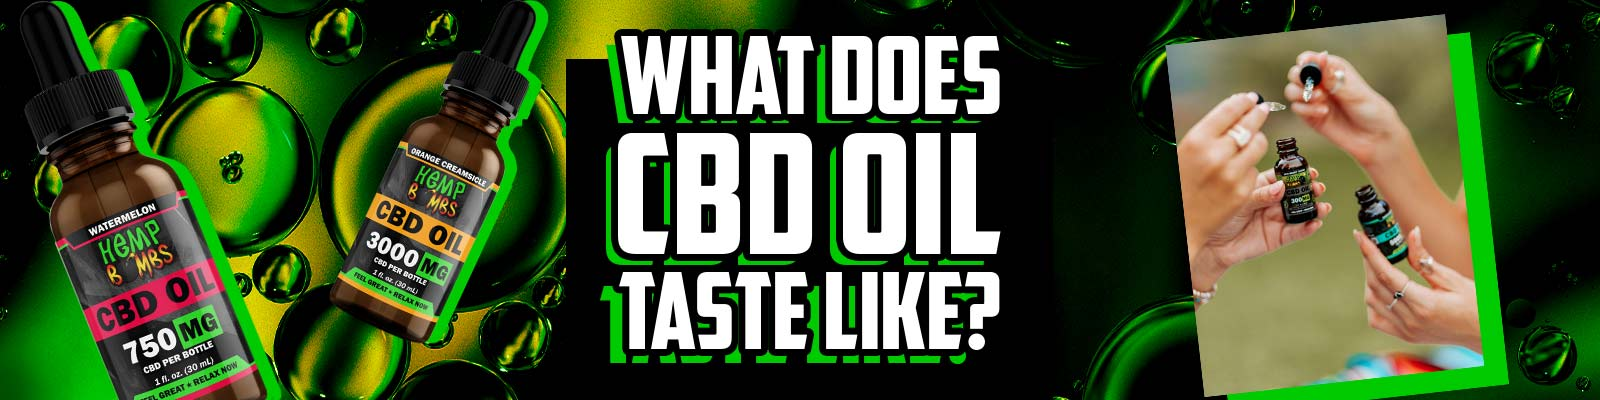 What Does CBD Oil Taste Like?